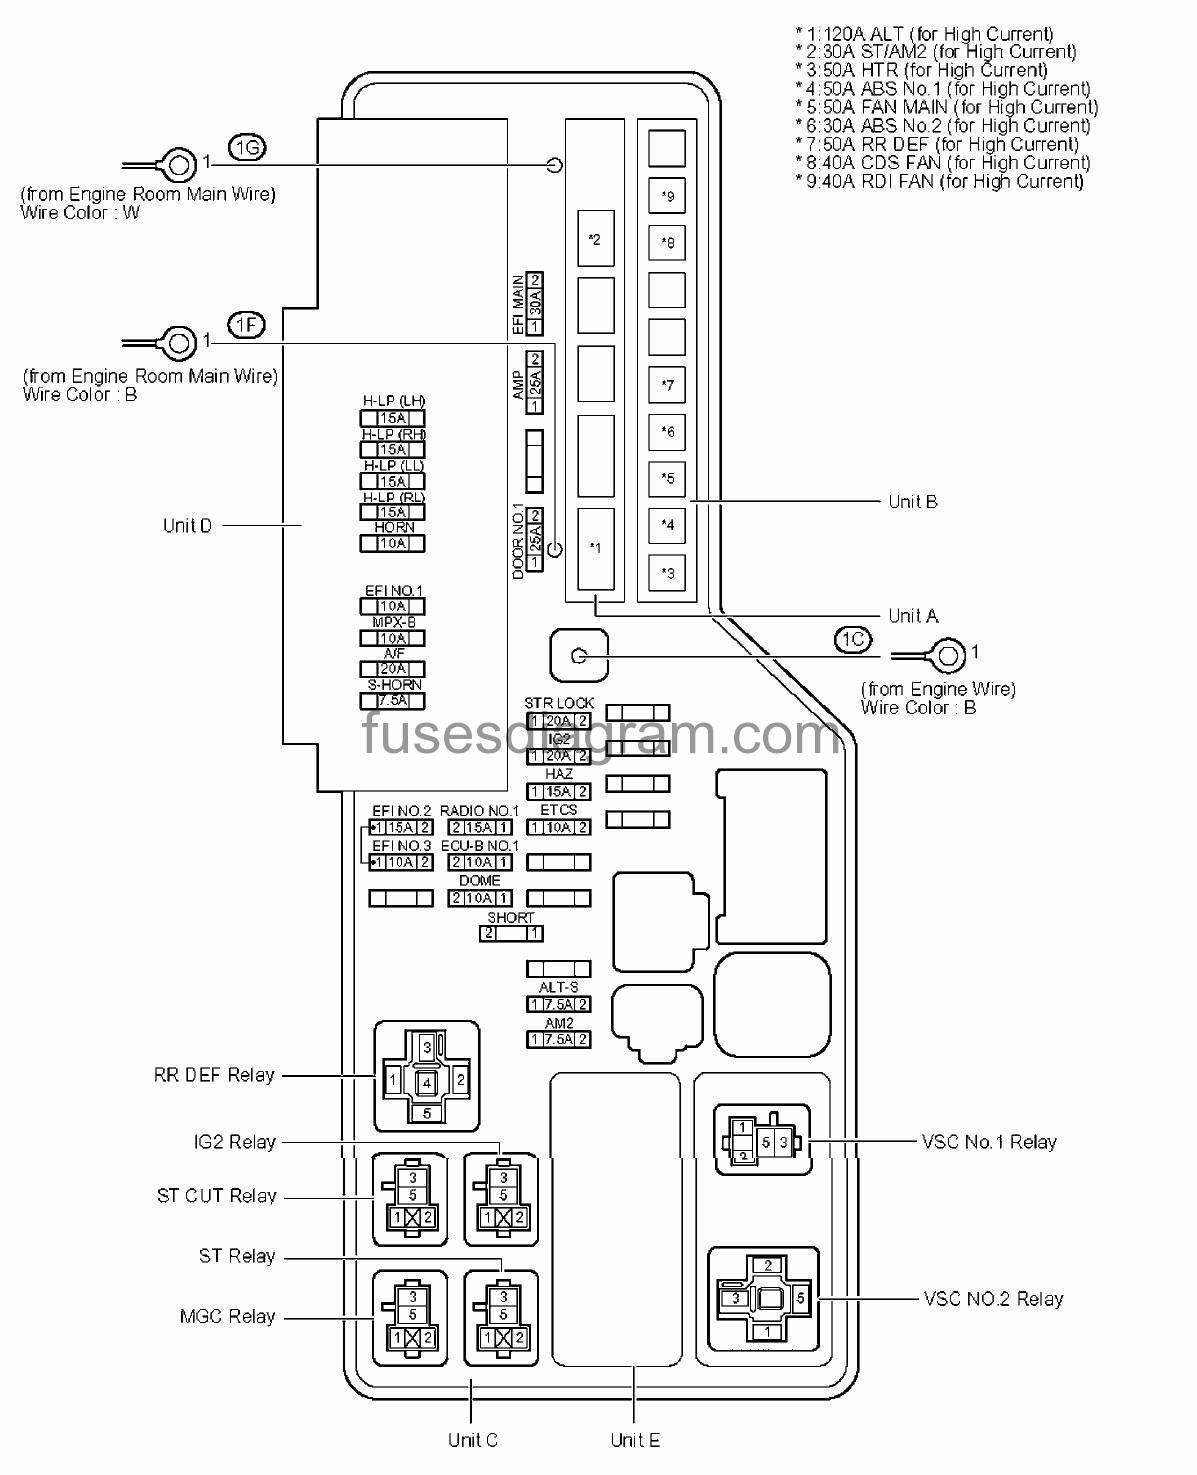 hight resolution of 2002 toyota camry fuse box guide wiring diagram toolbox 2003 camry fuse box diagram under dash